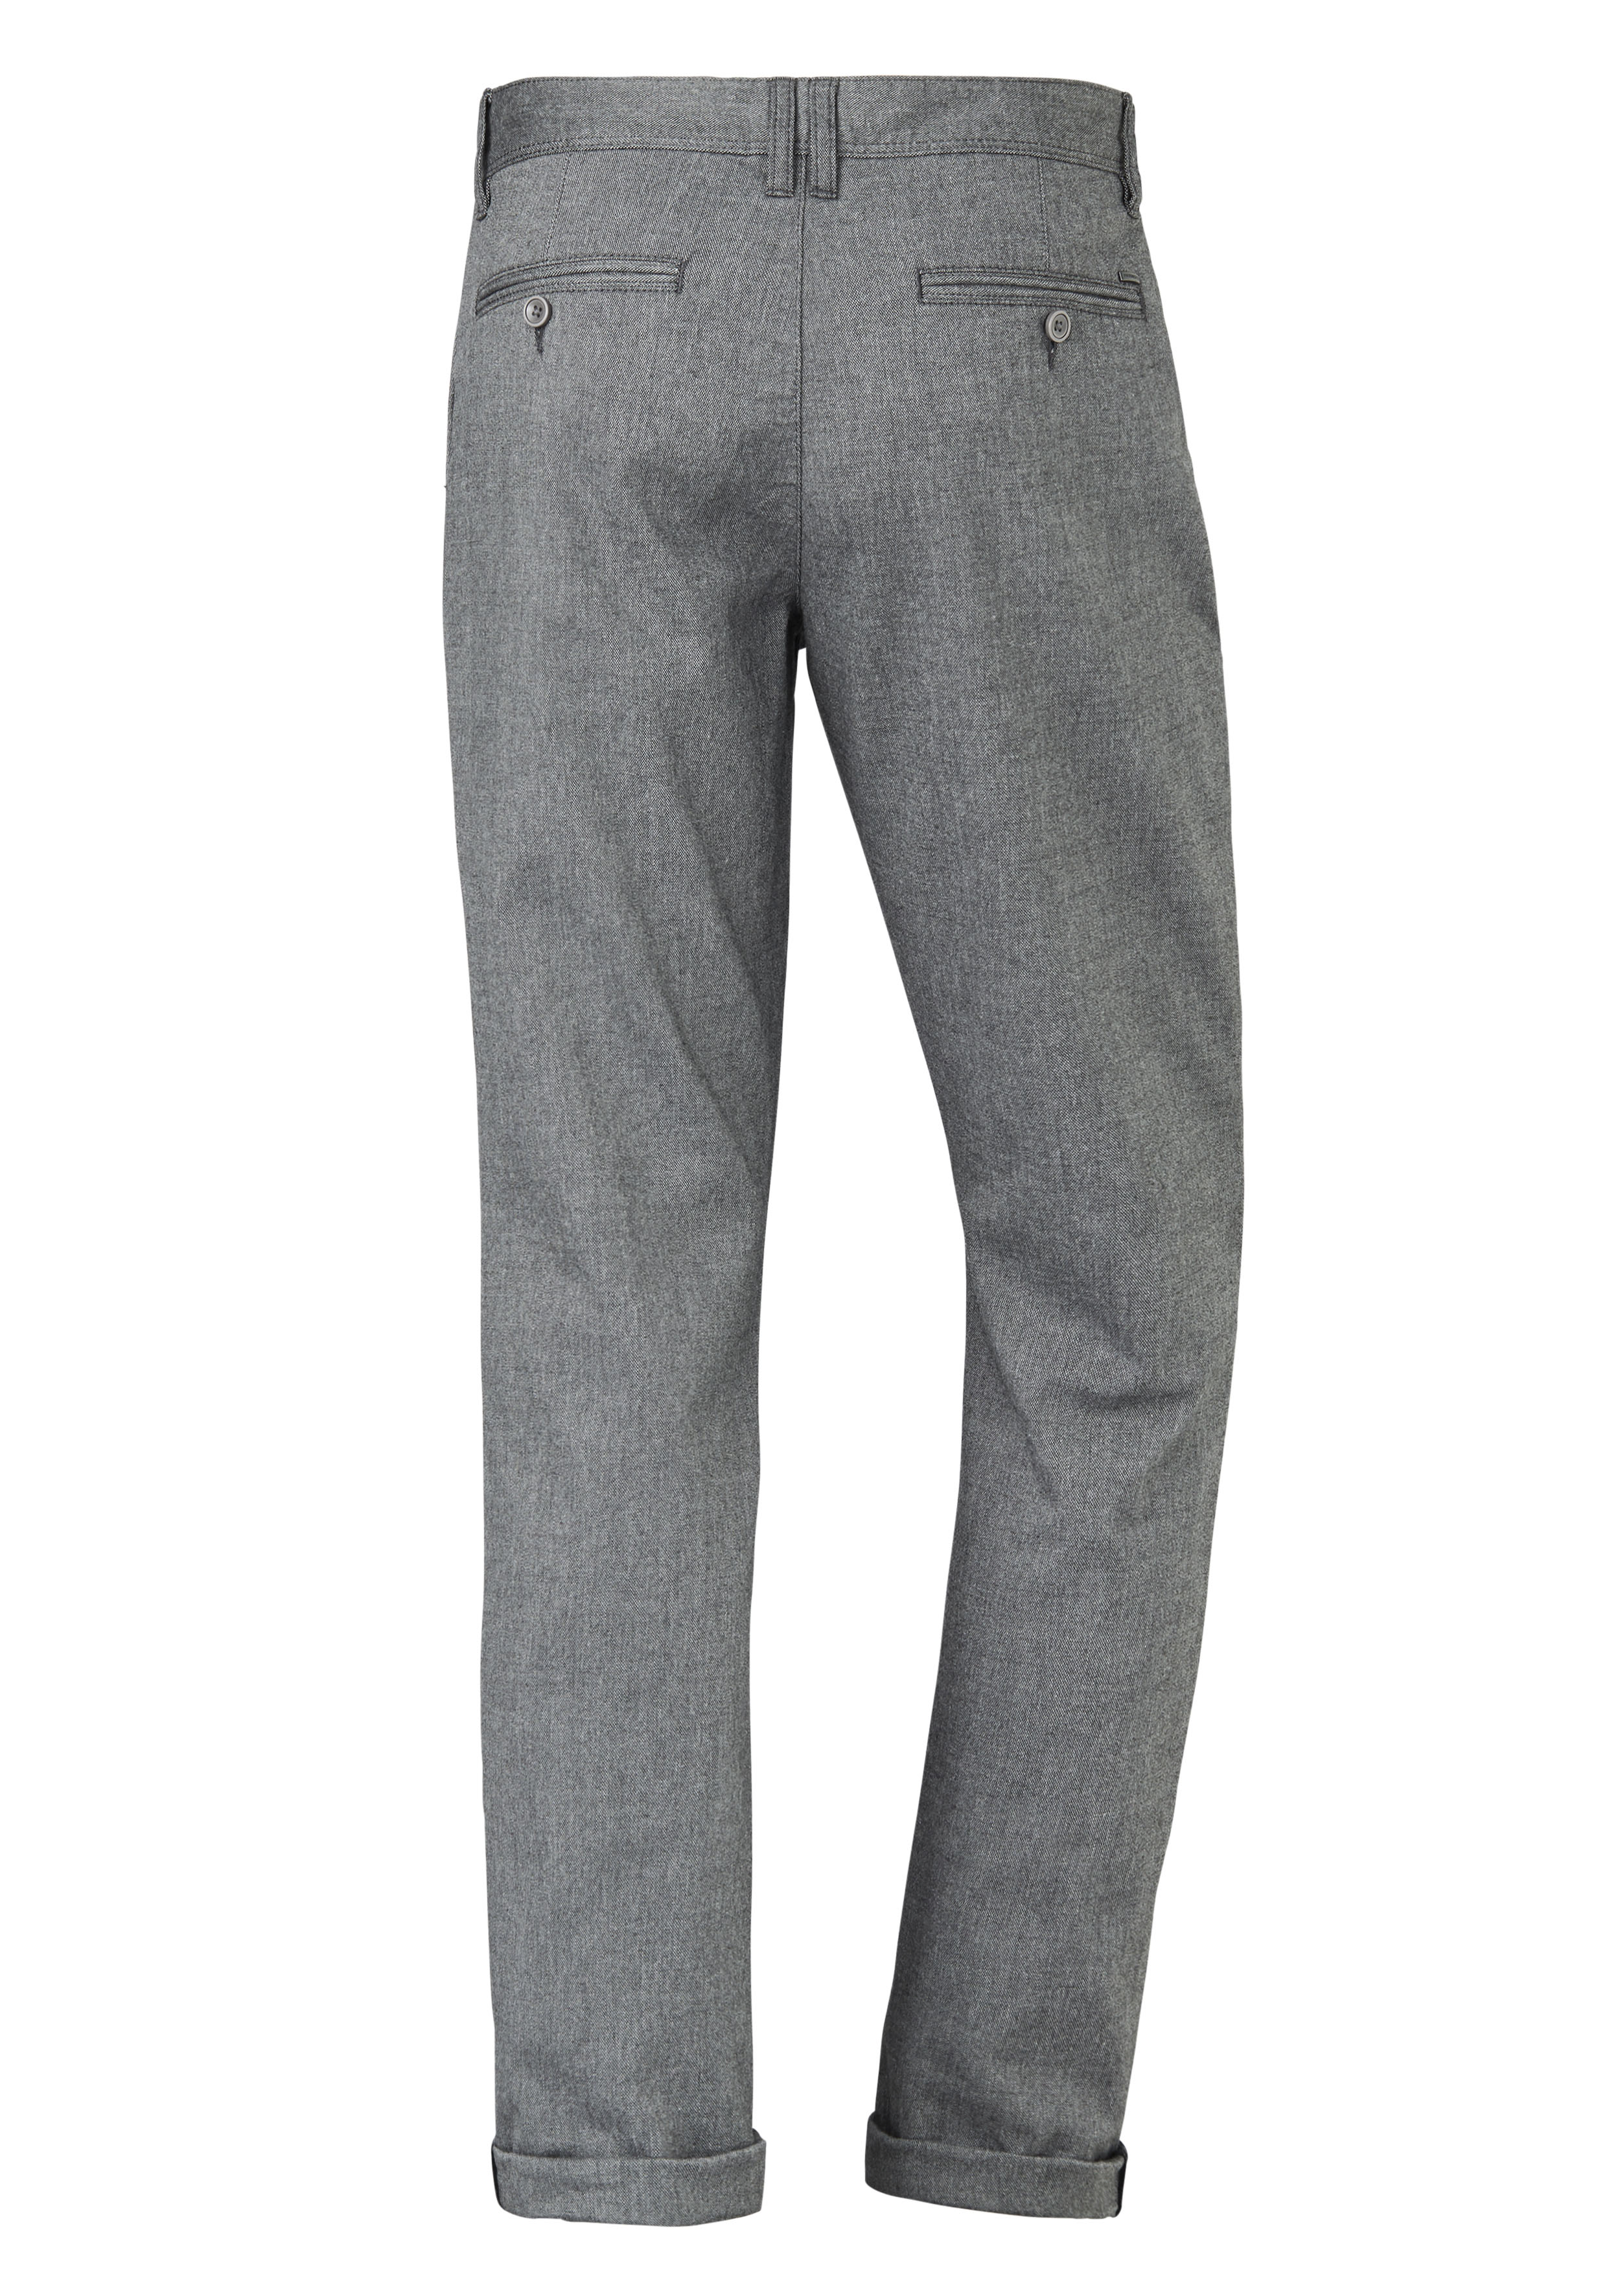 Paddock's Chino Codie Wool Canvas